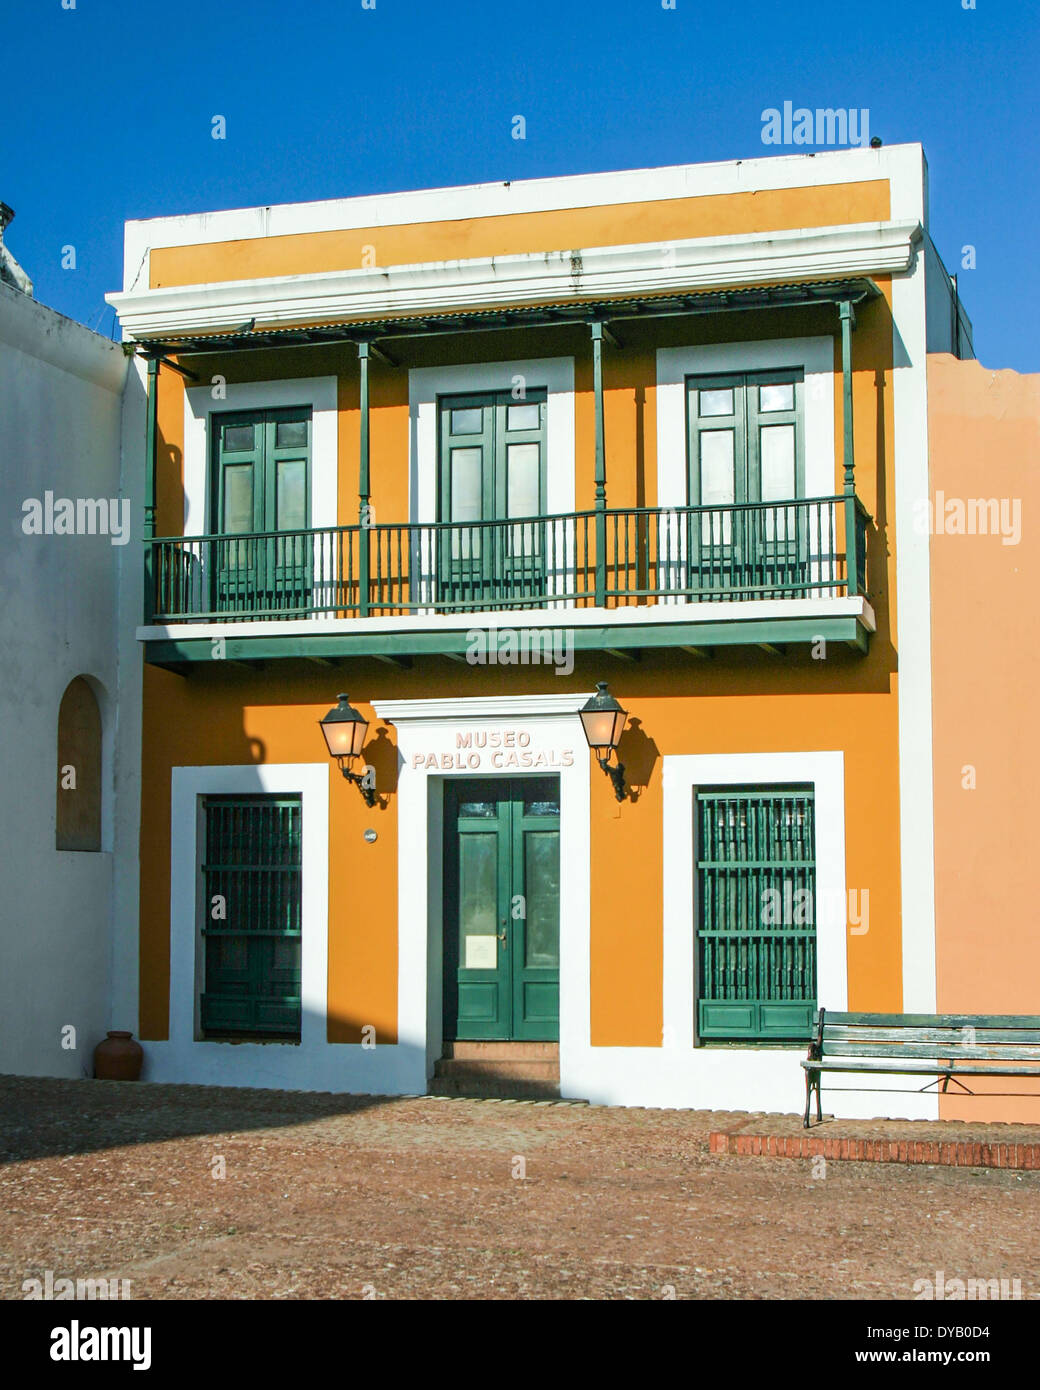 San Juan, Puerto Rico, US. 28th Mar, 2005. The Pablo Casals Museum (Museo Pablo Casals), in the San Jose Plaza in El Viejo San Juan (Old San Juan), honors the famous Spanish cellist and symphony conductor who started a festival to celebrate classical music in San Juan in 1956. In 1958 he formed the Puerto Rico Symphony Orchestra, and in 1959 he set up the Conservatory of Music of Puerto Rico. He died in San Juan in 1973 and was buried in the Puerto Rico National Cemetery in Bayamon, Puerto Rico. © Arnold Drapkin/ZUMAPRESS.com/Alamy Live News - Stock Image